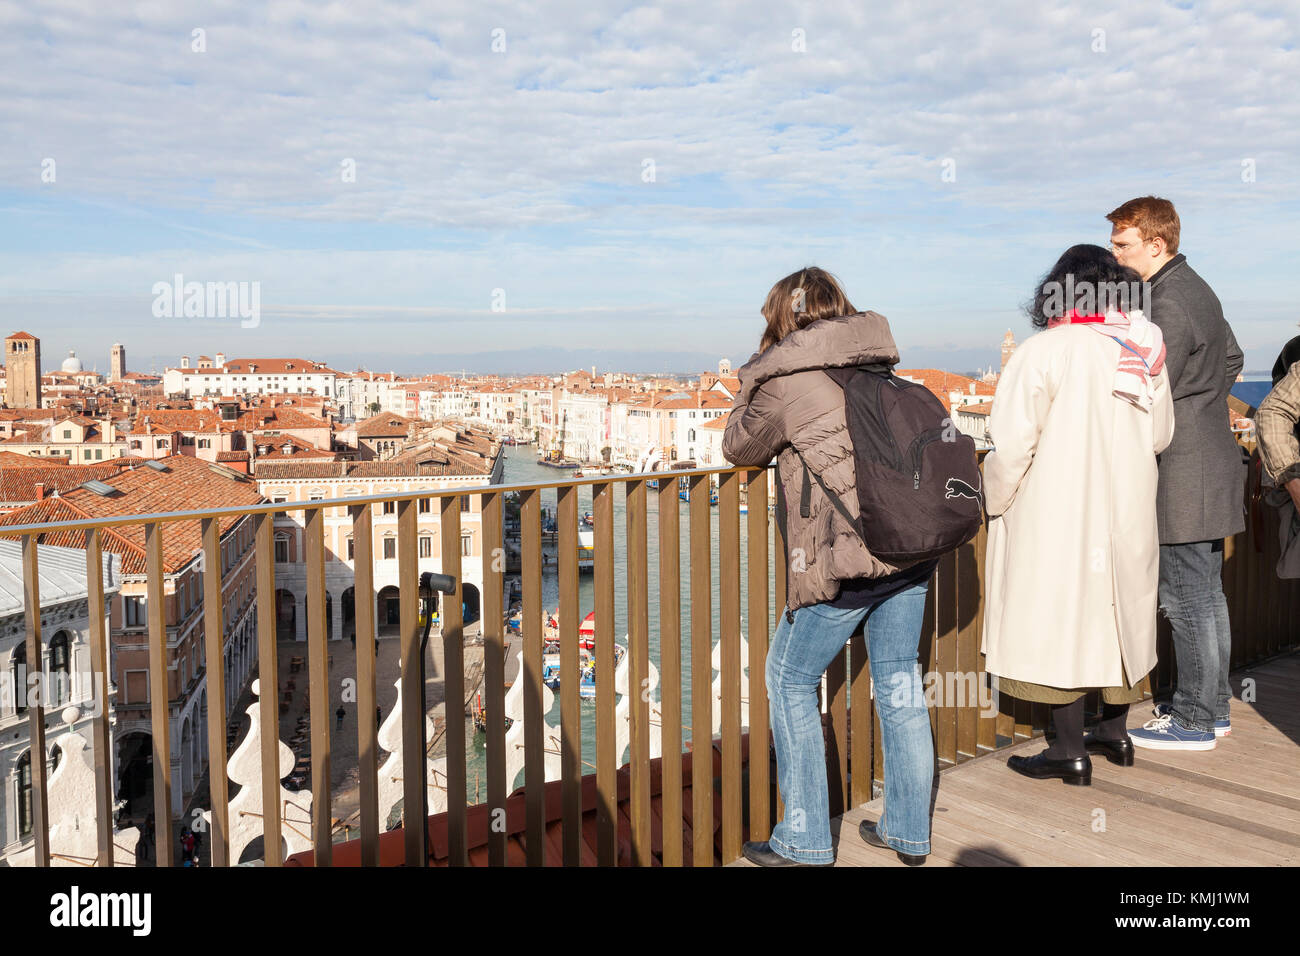 Tourists viewing the Grand Canal and rooftops of Venice from Fondaco dei Tedeschi roof terrace - Stock Image